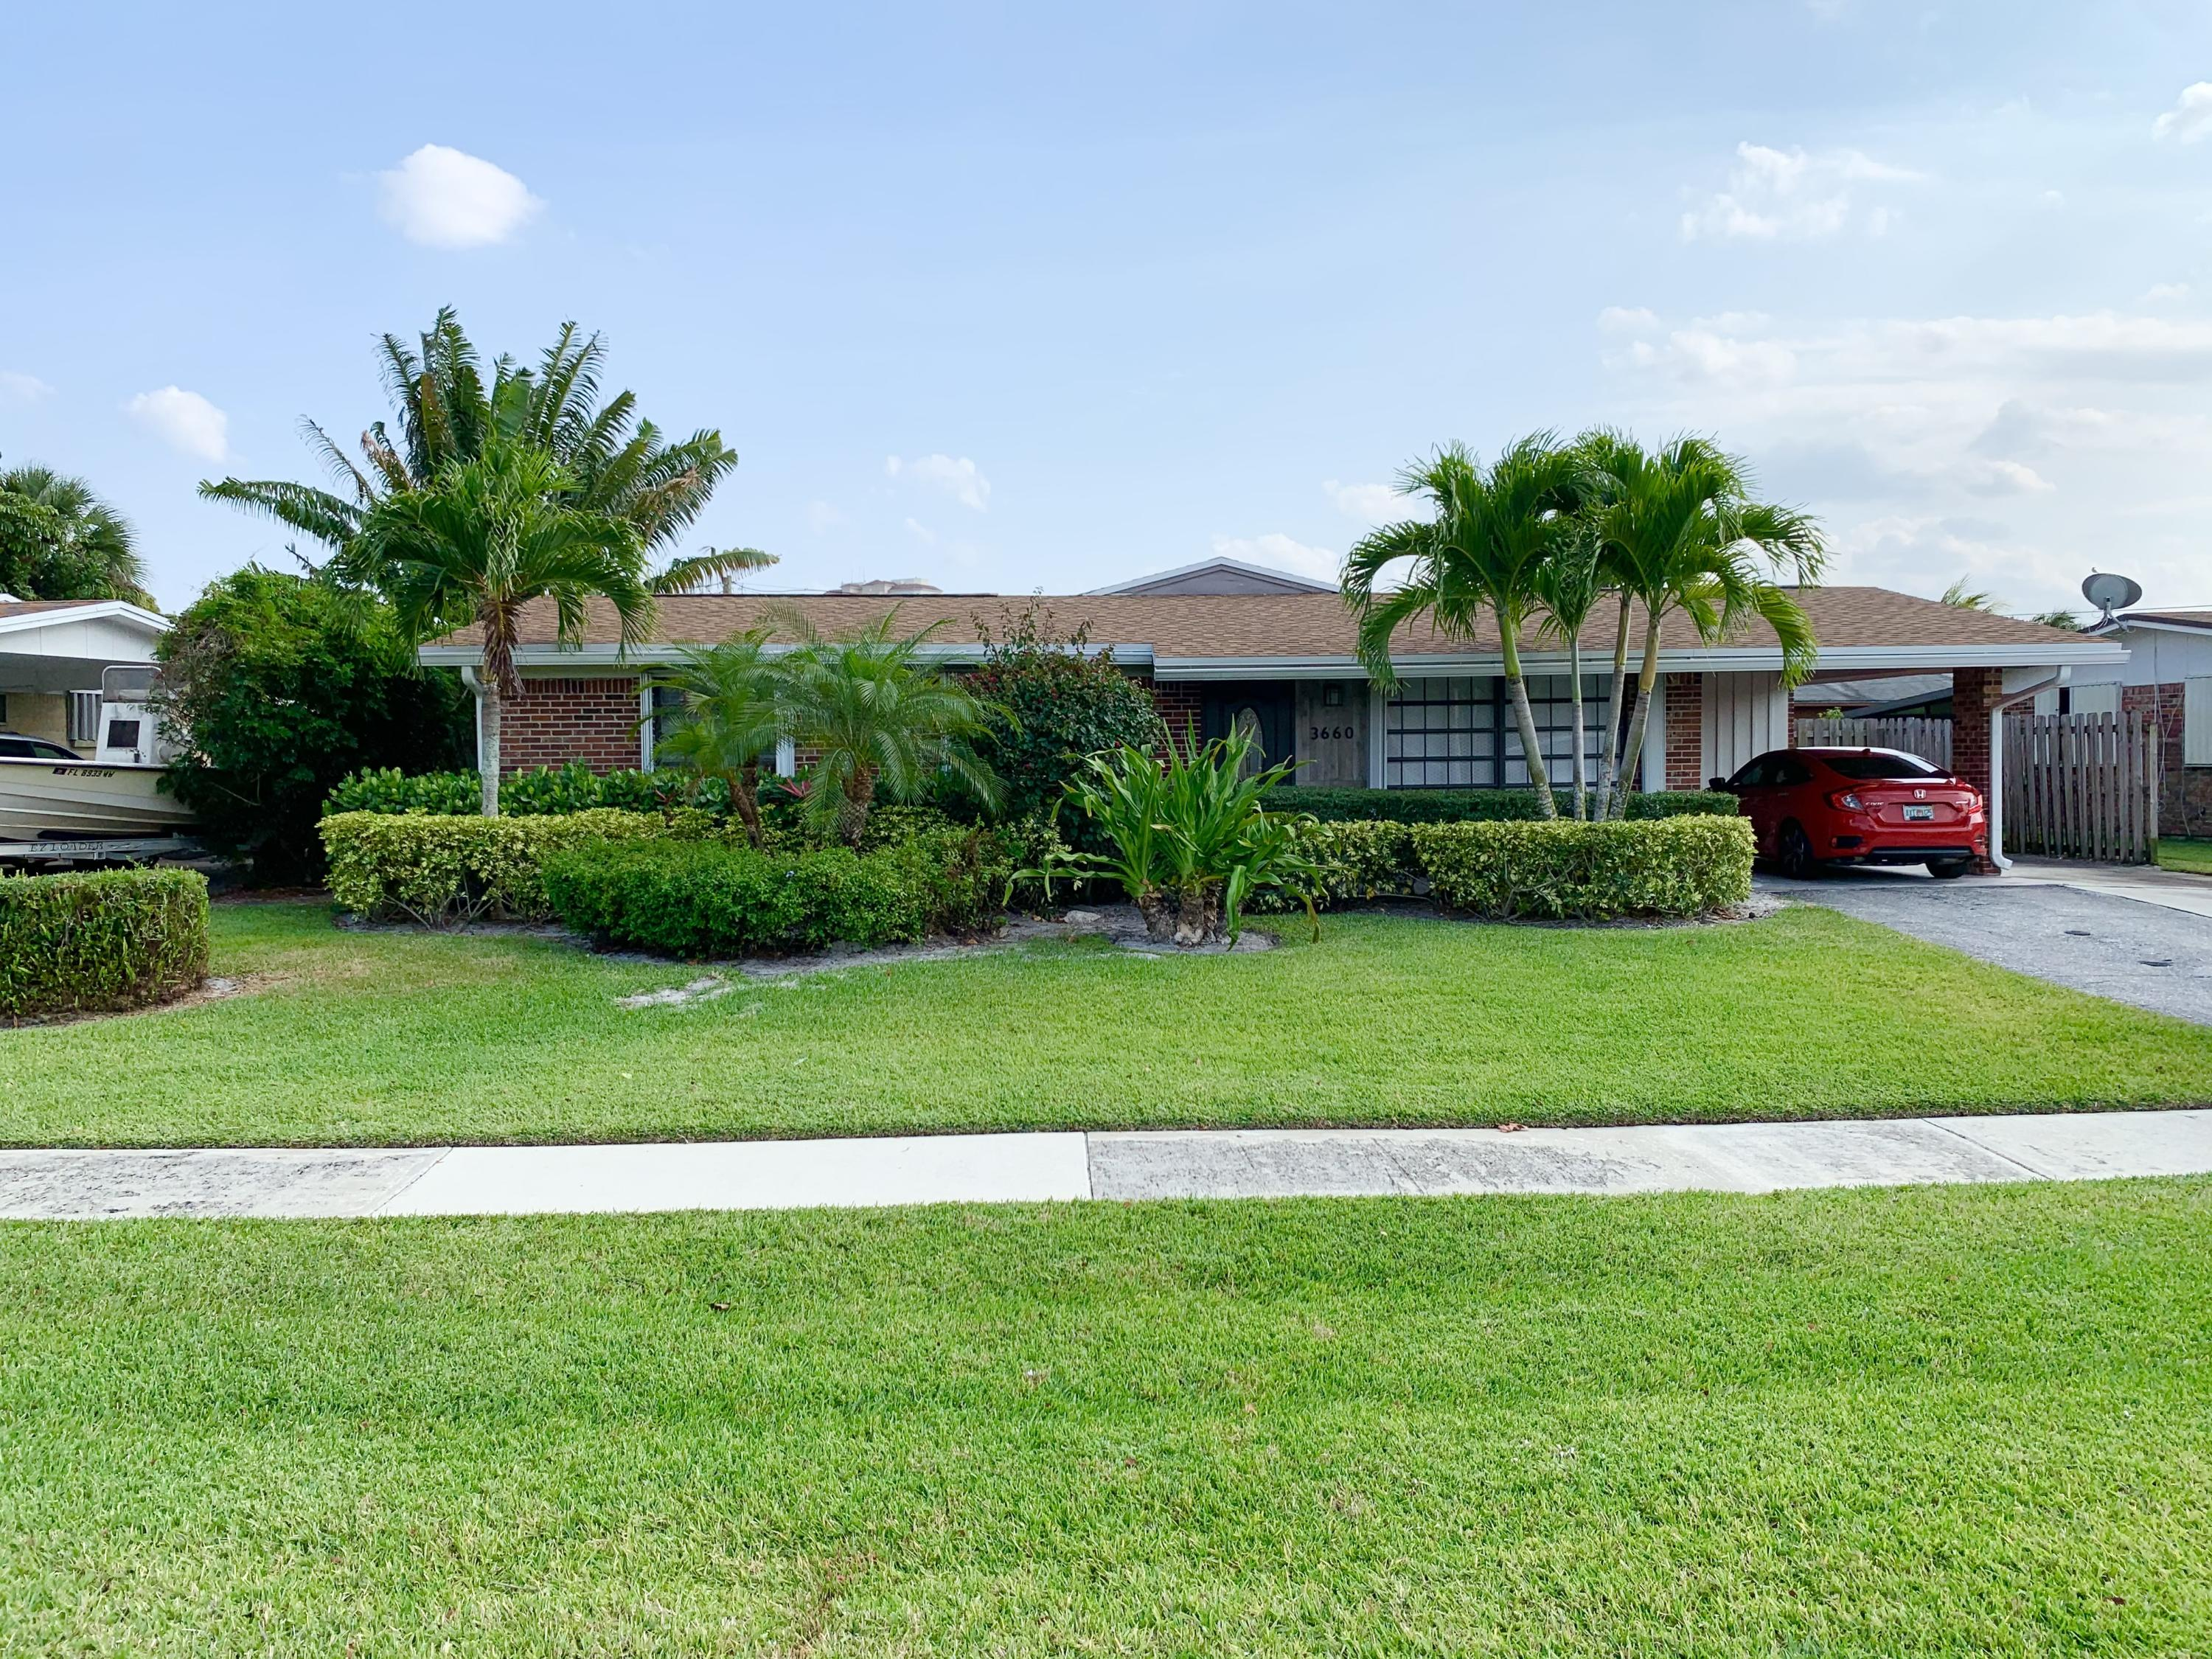 Home for sale in PALM BEACH CABANA COLONY PLAT 1 IN PB 26 PGS 203 TO 205 INC Palm Beach Gardens Florida